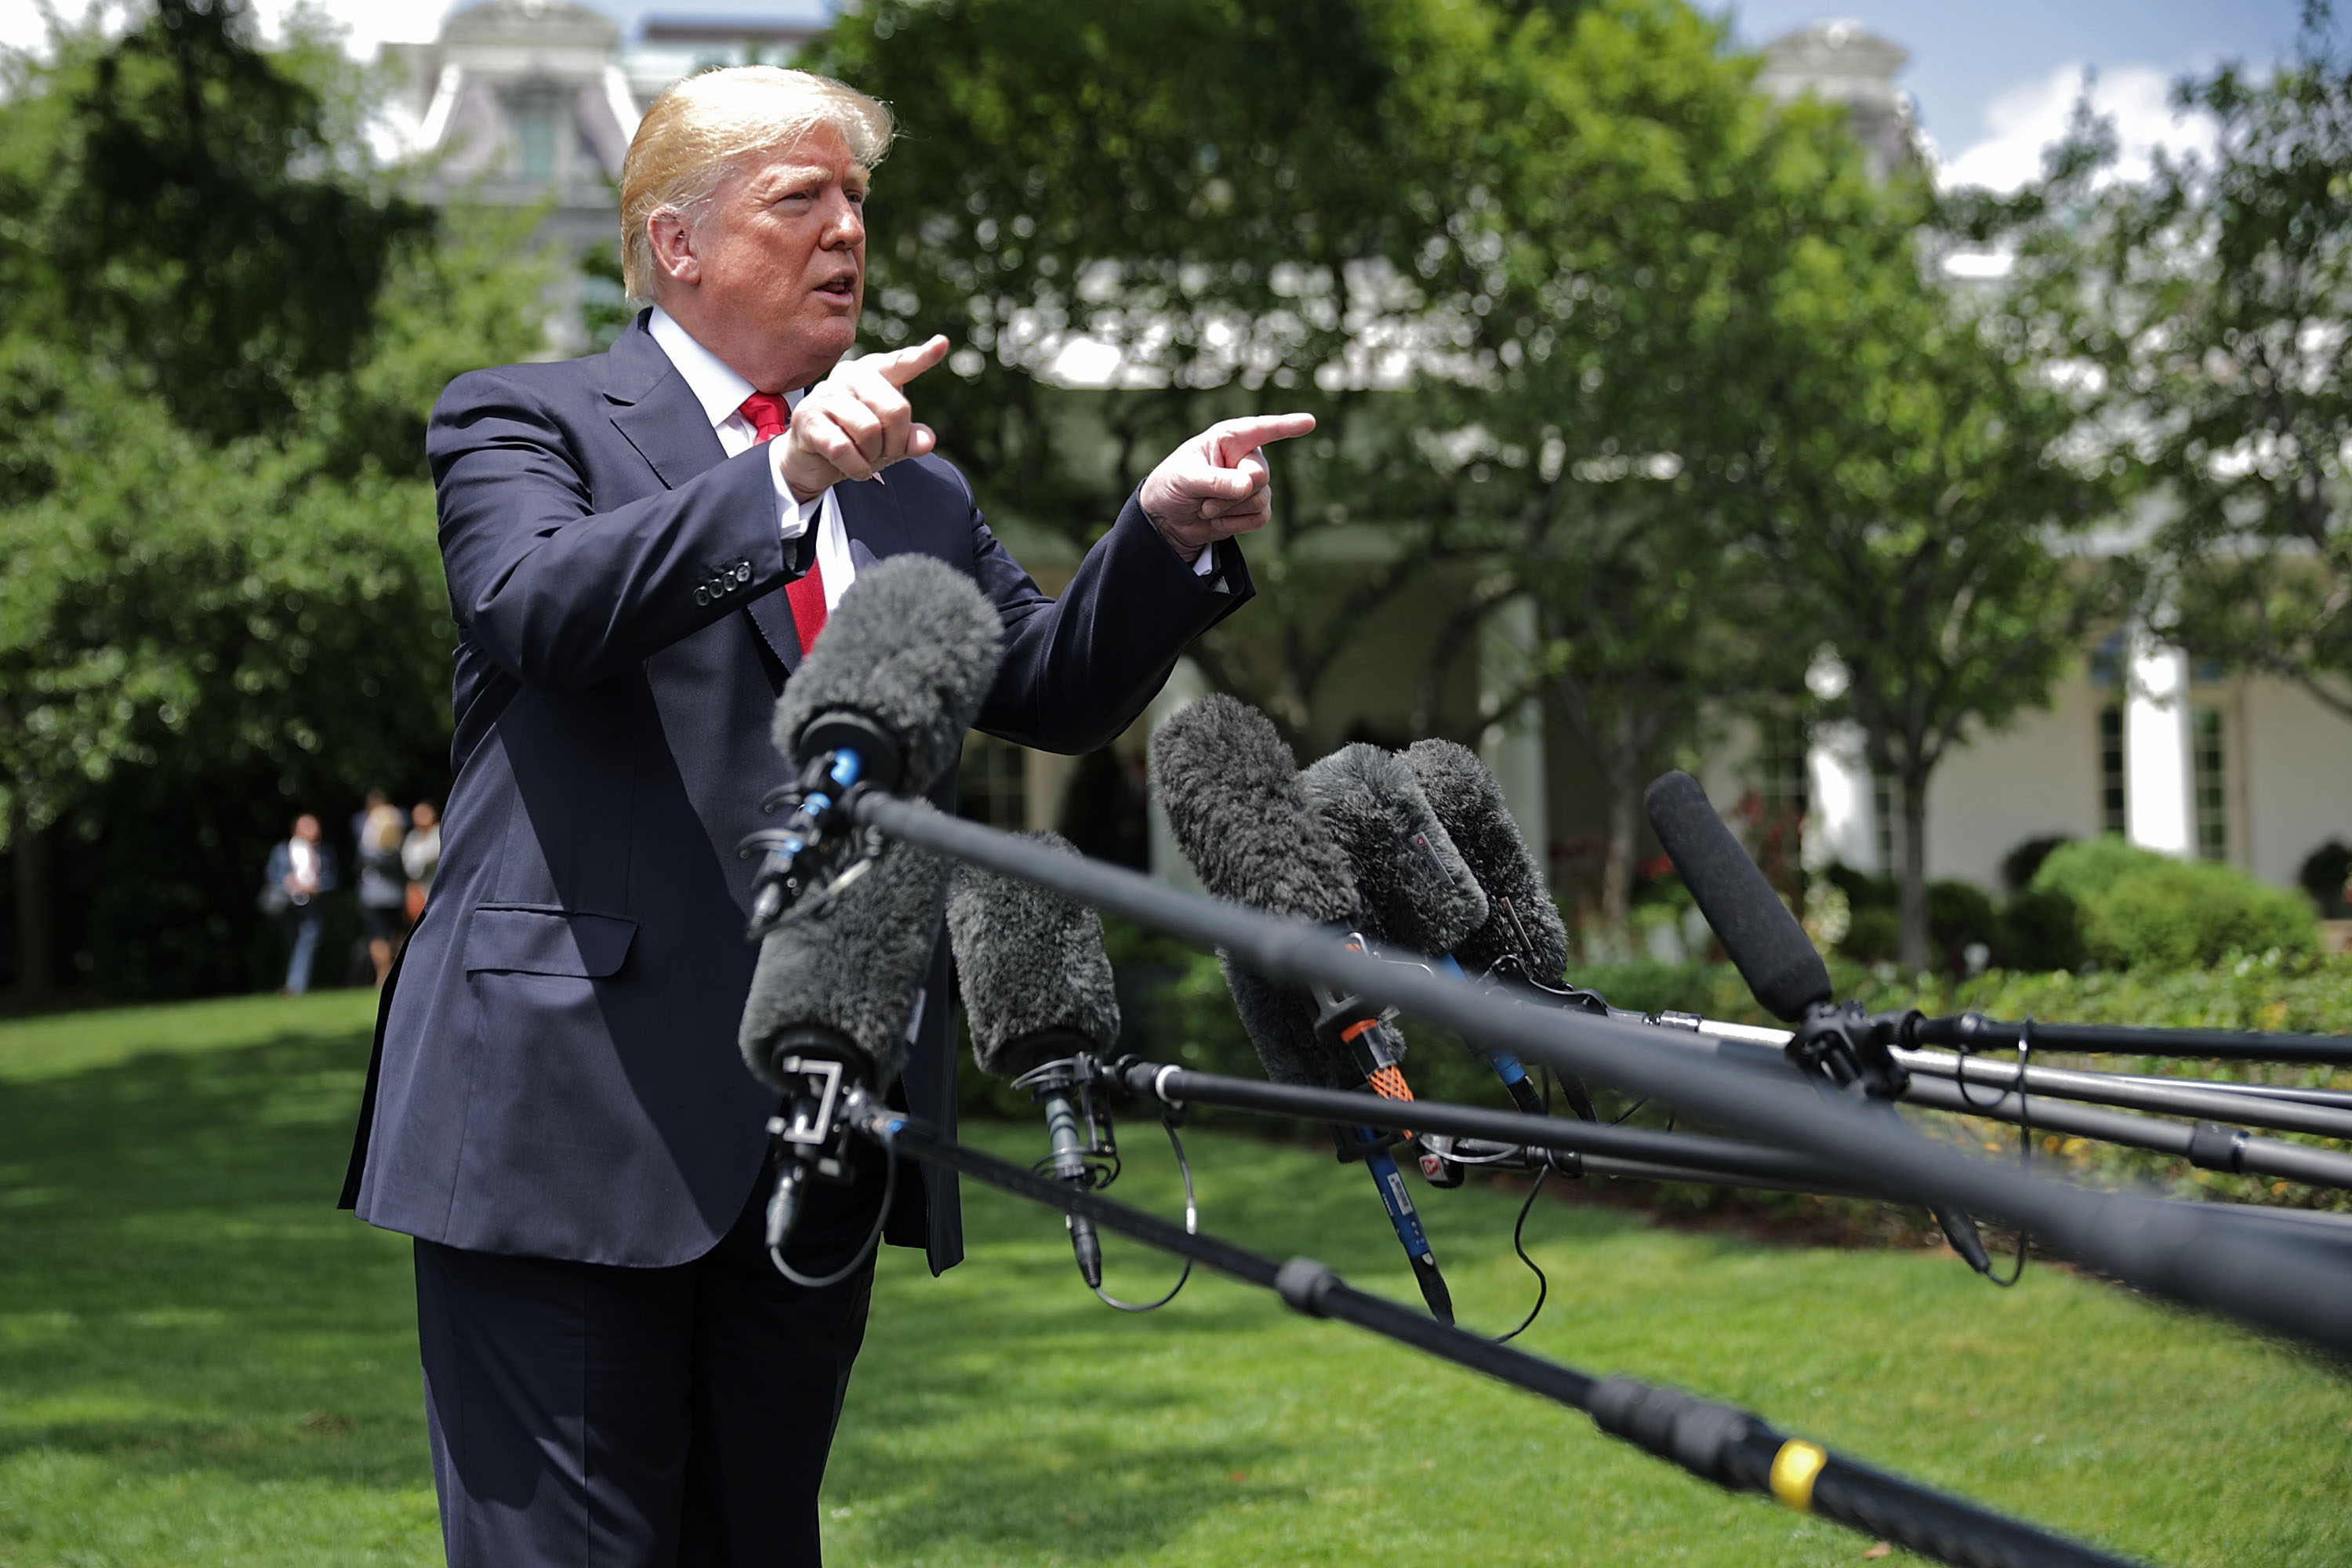 U.S. President Donald Trump talks to journalists before departing the White House May 23, 2018 in Washington, DC. Trump is traveling to New York where he will tour theÊMorrelly Homeland Security Center and then attend aÊroundtable discussion and dinner with supporters before returning to Washington.Ê